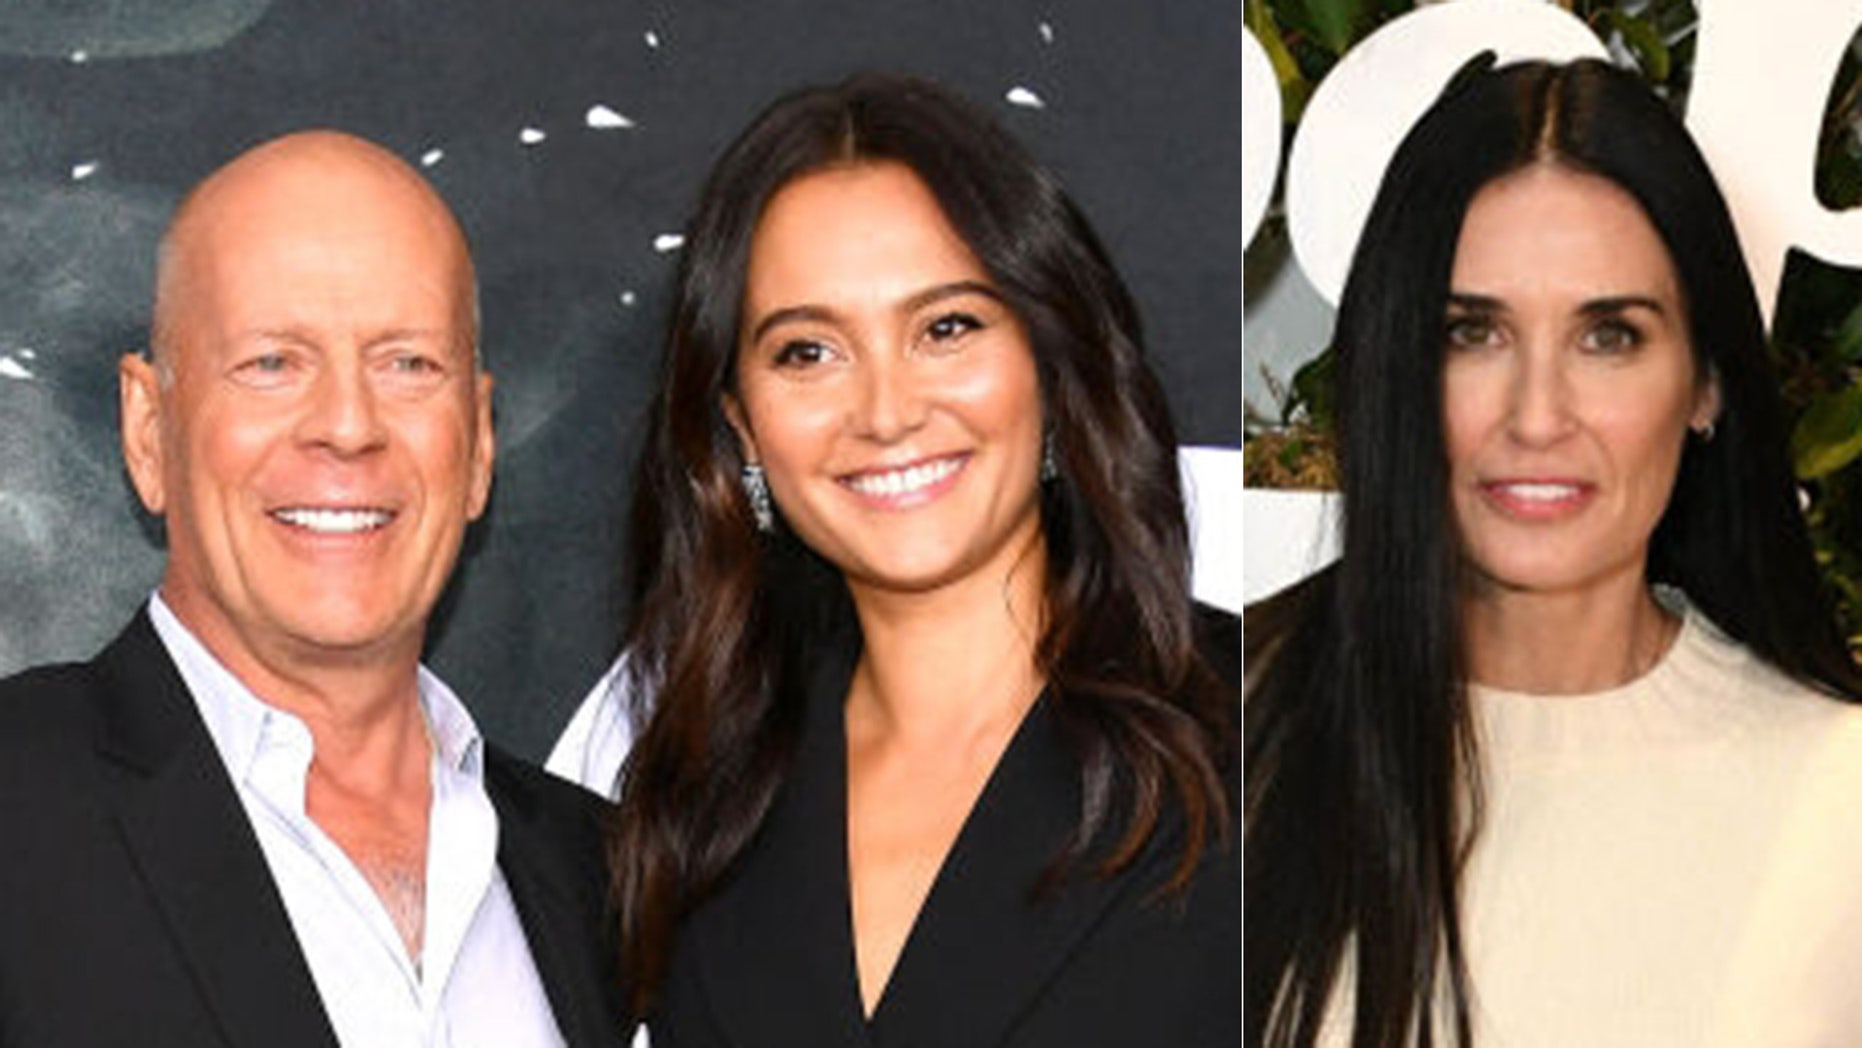 Demi Moore attended ex-husband Bruce Willis' vow renewal to wife Emma Heming.